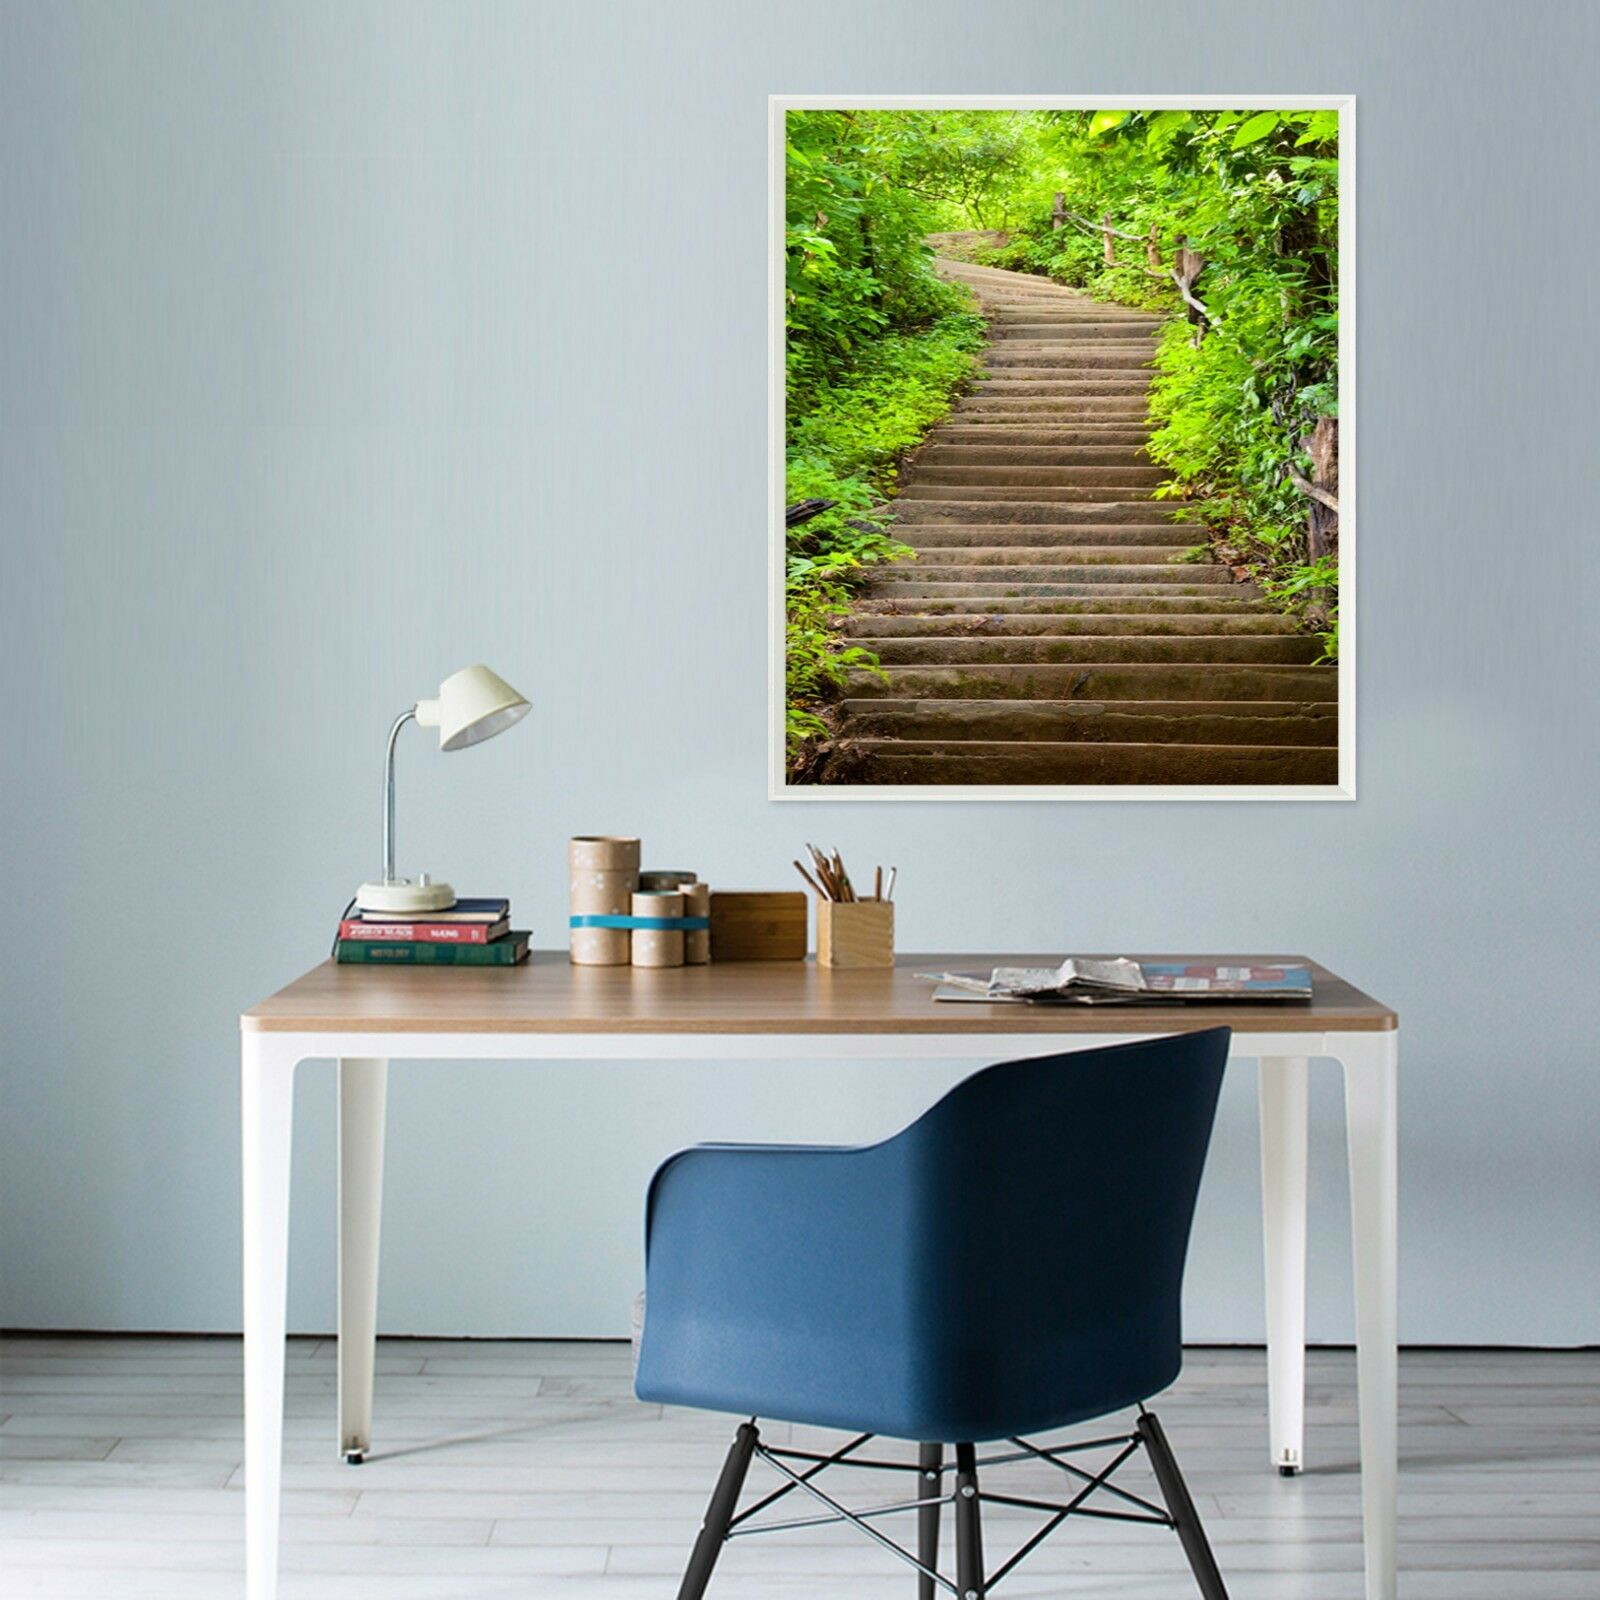 3D Green Plant Stairs 3 Framed Poster Home Decor Print Painting Art AJ WALLPAPER